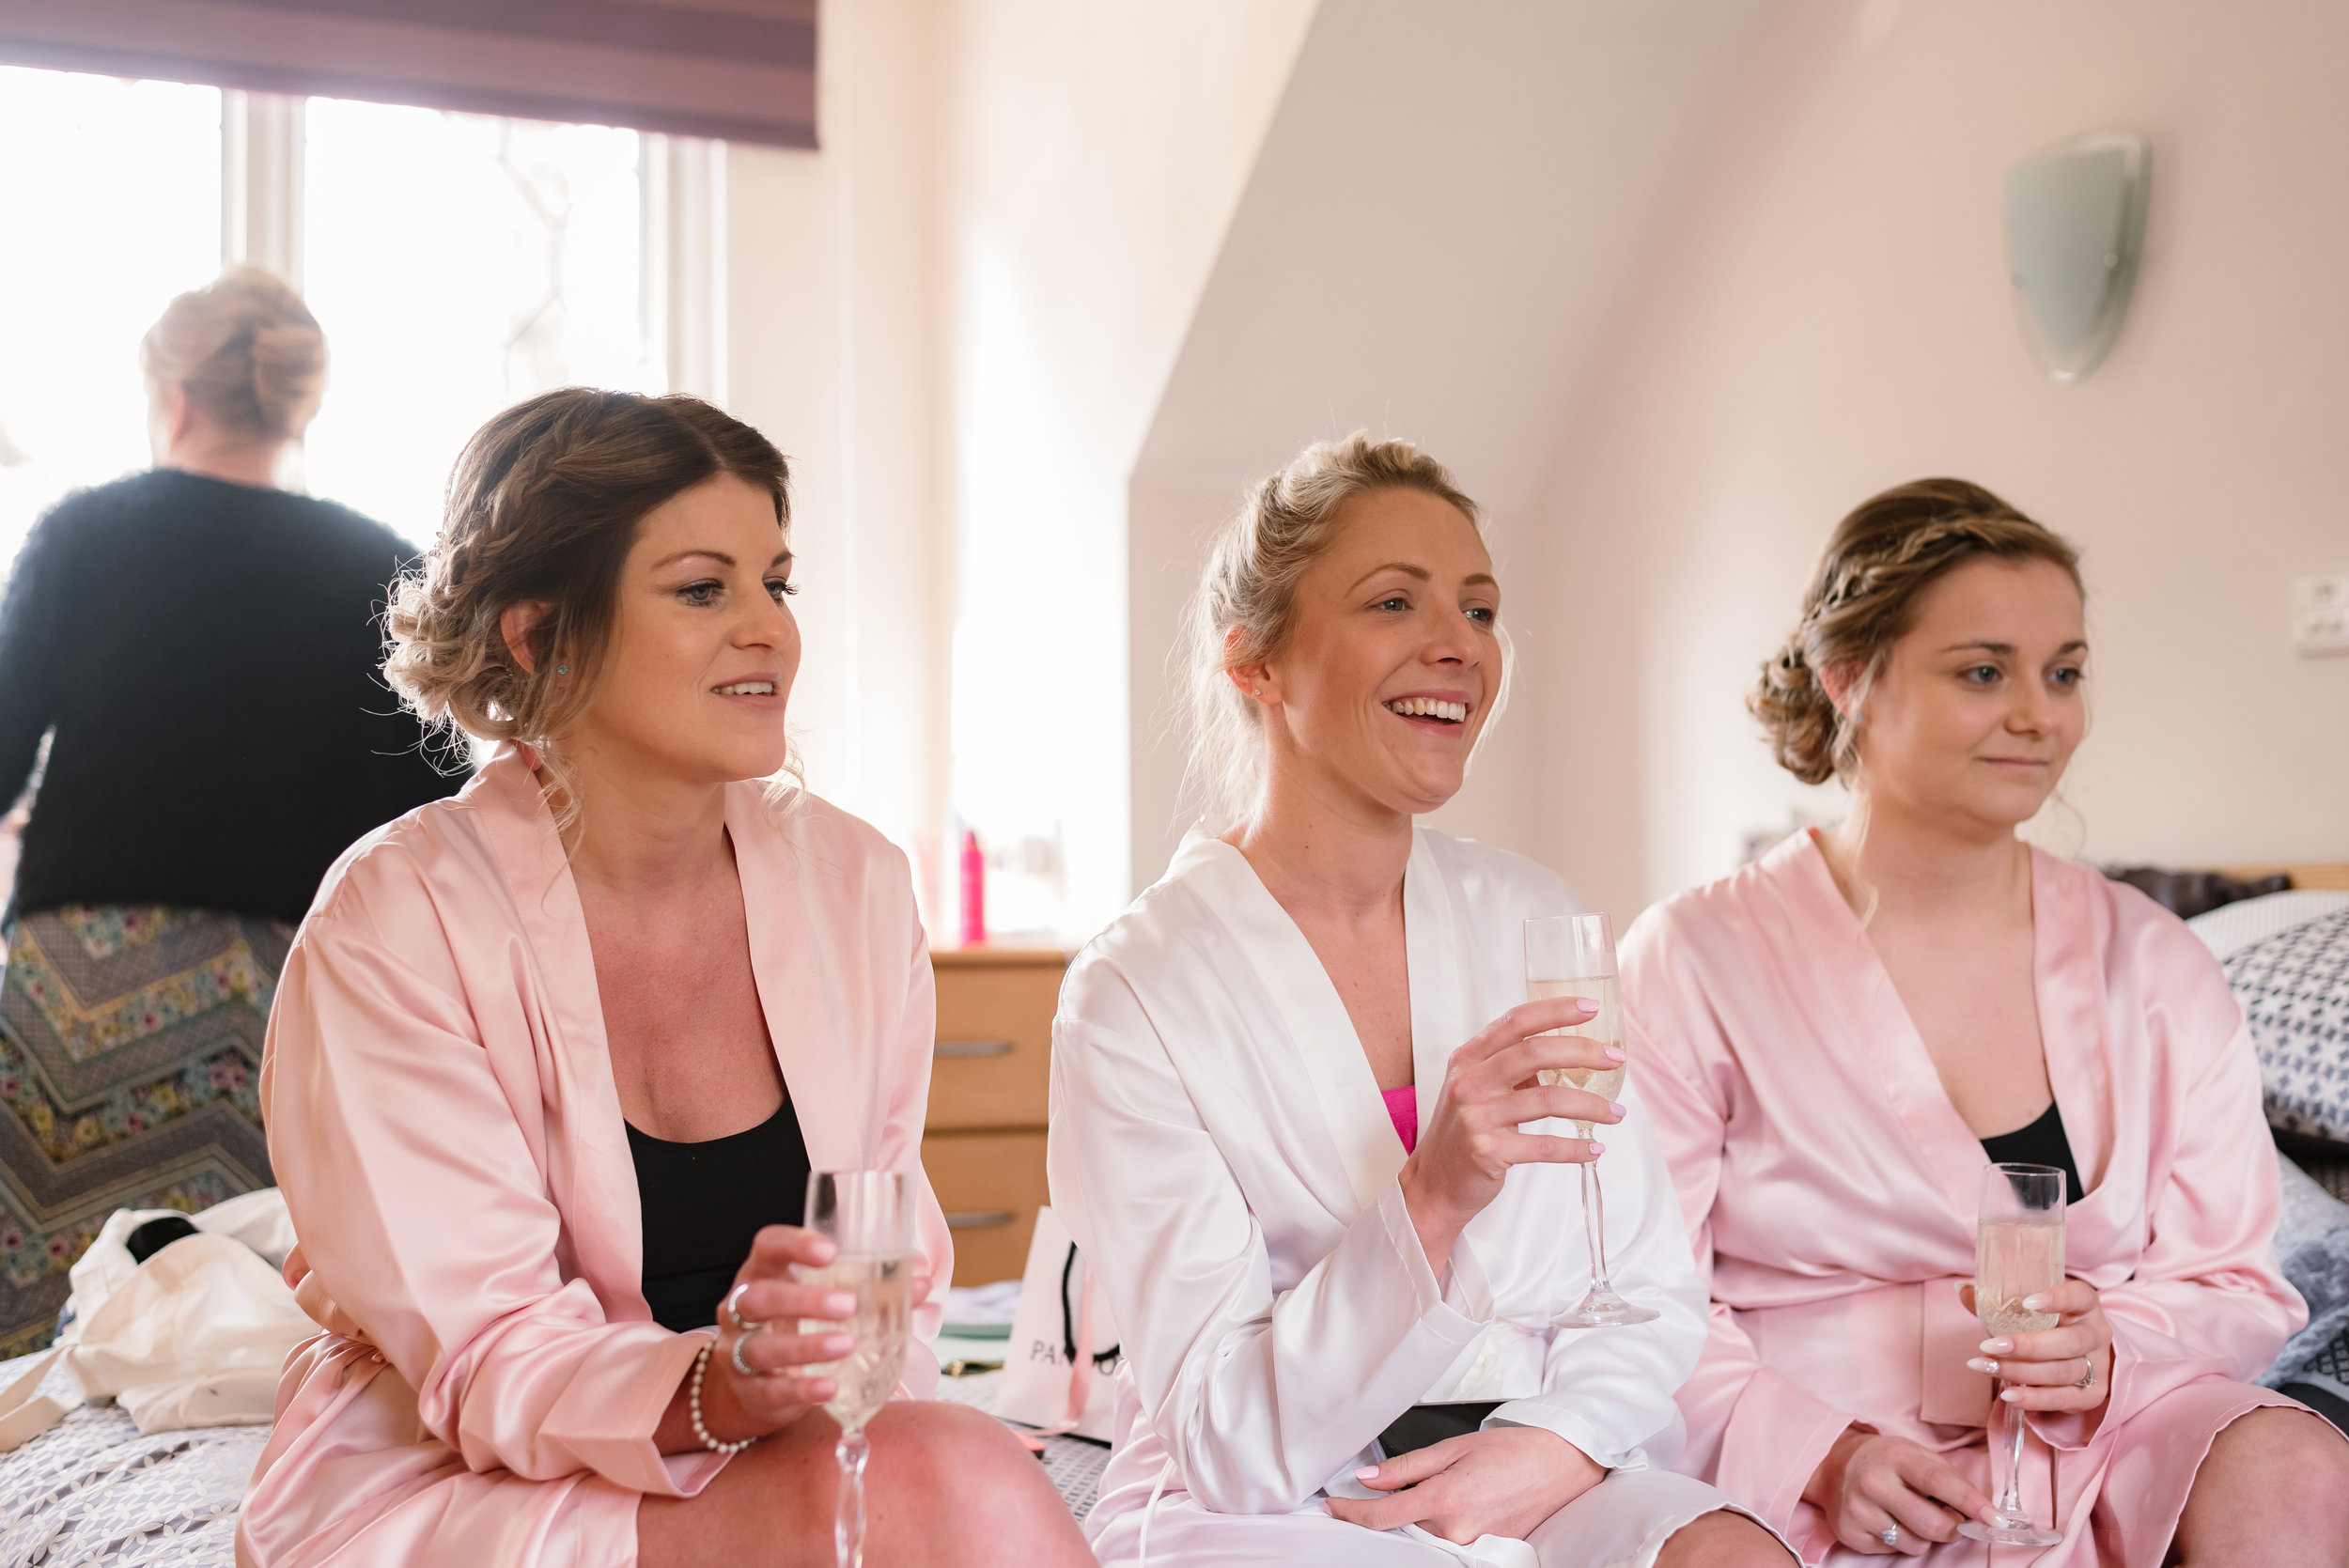 Sarah-Fishlock-Photography / Hampshire-wedding-photographer-hampshire / fleet-wedding-photographer-fleet / Hampshire-church-wedding / Hampshire-wedding-venue / Hampshire-hotel-wedding-venue